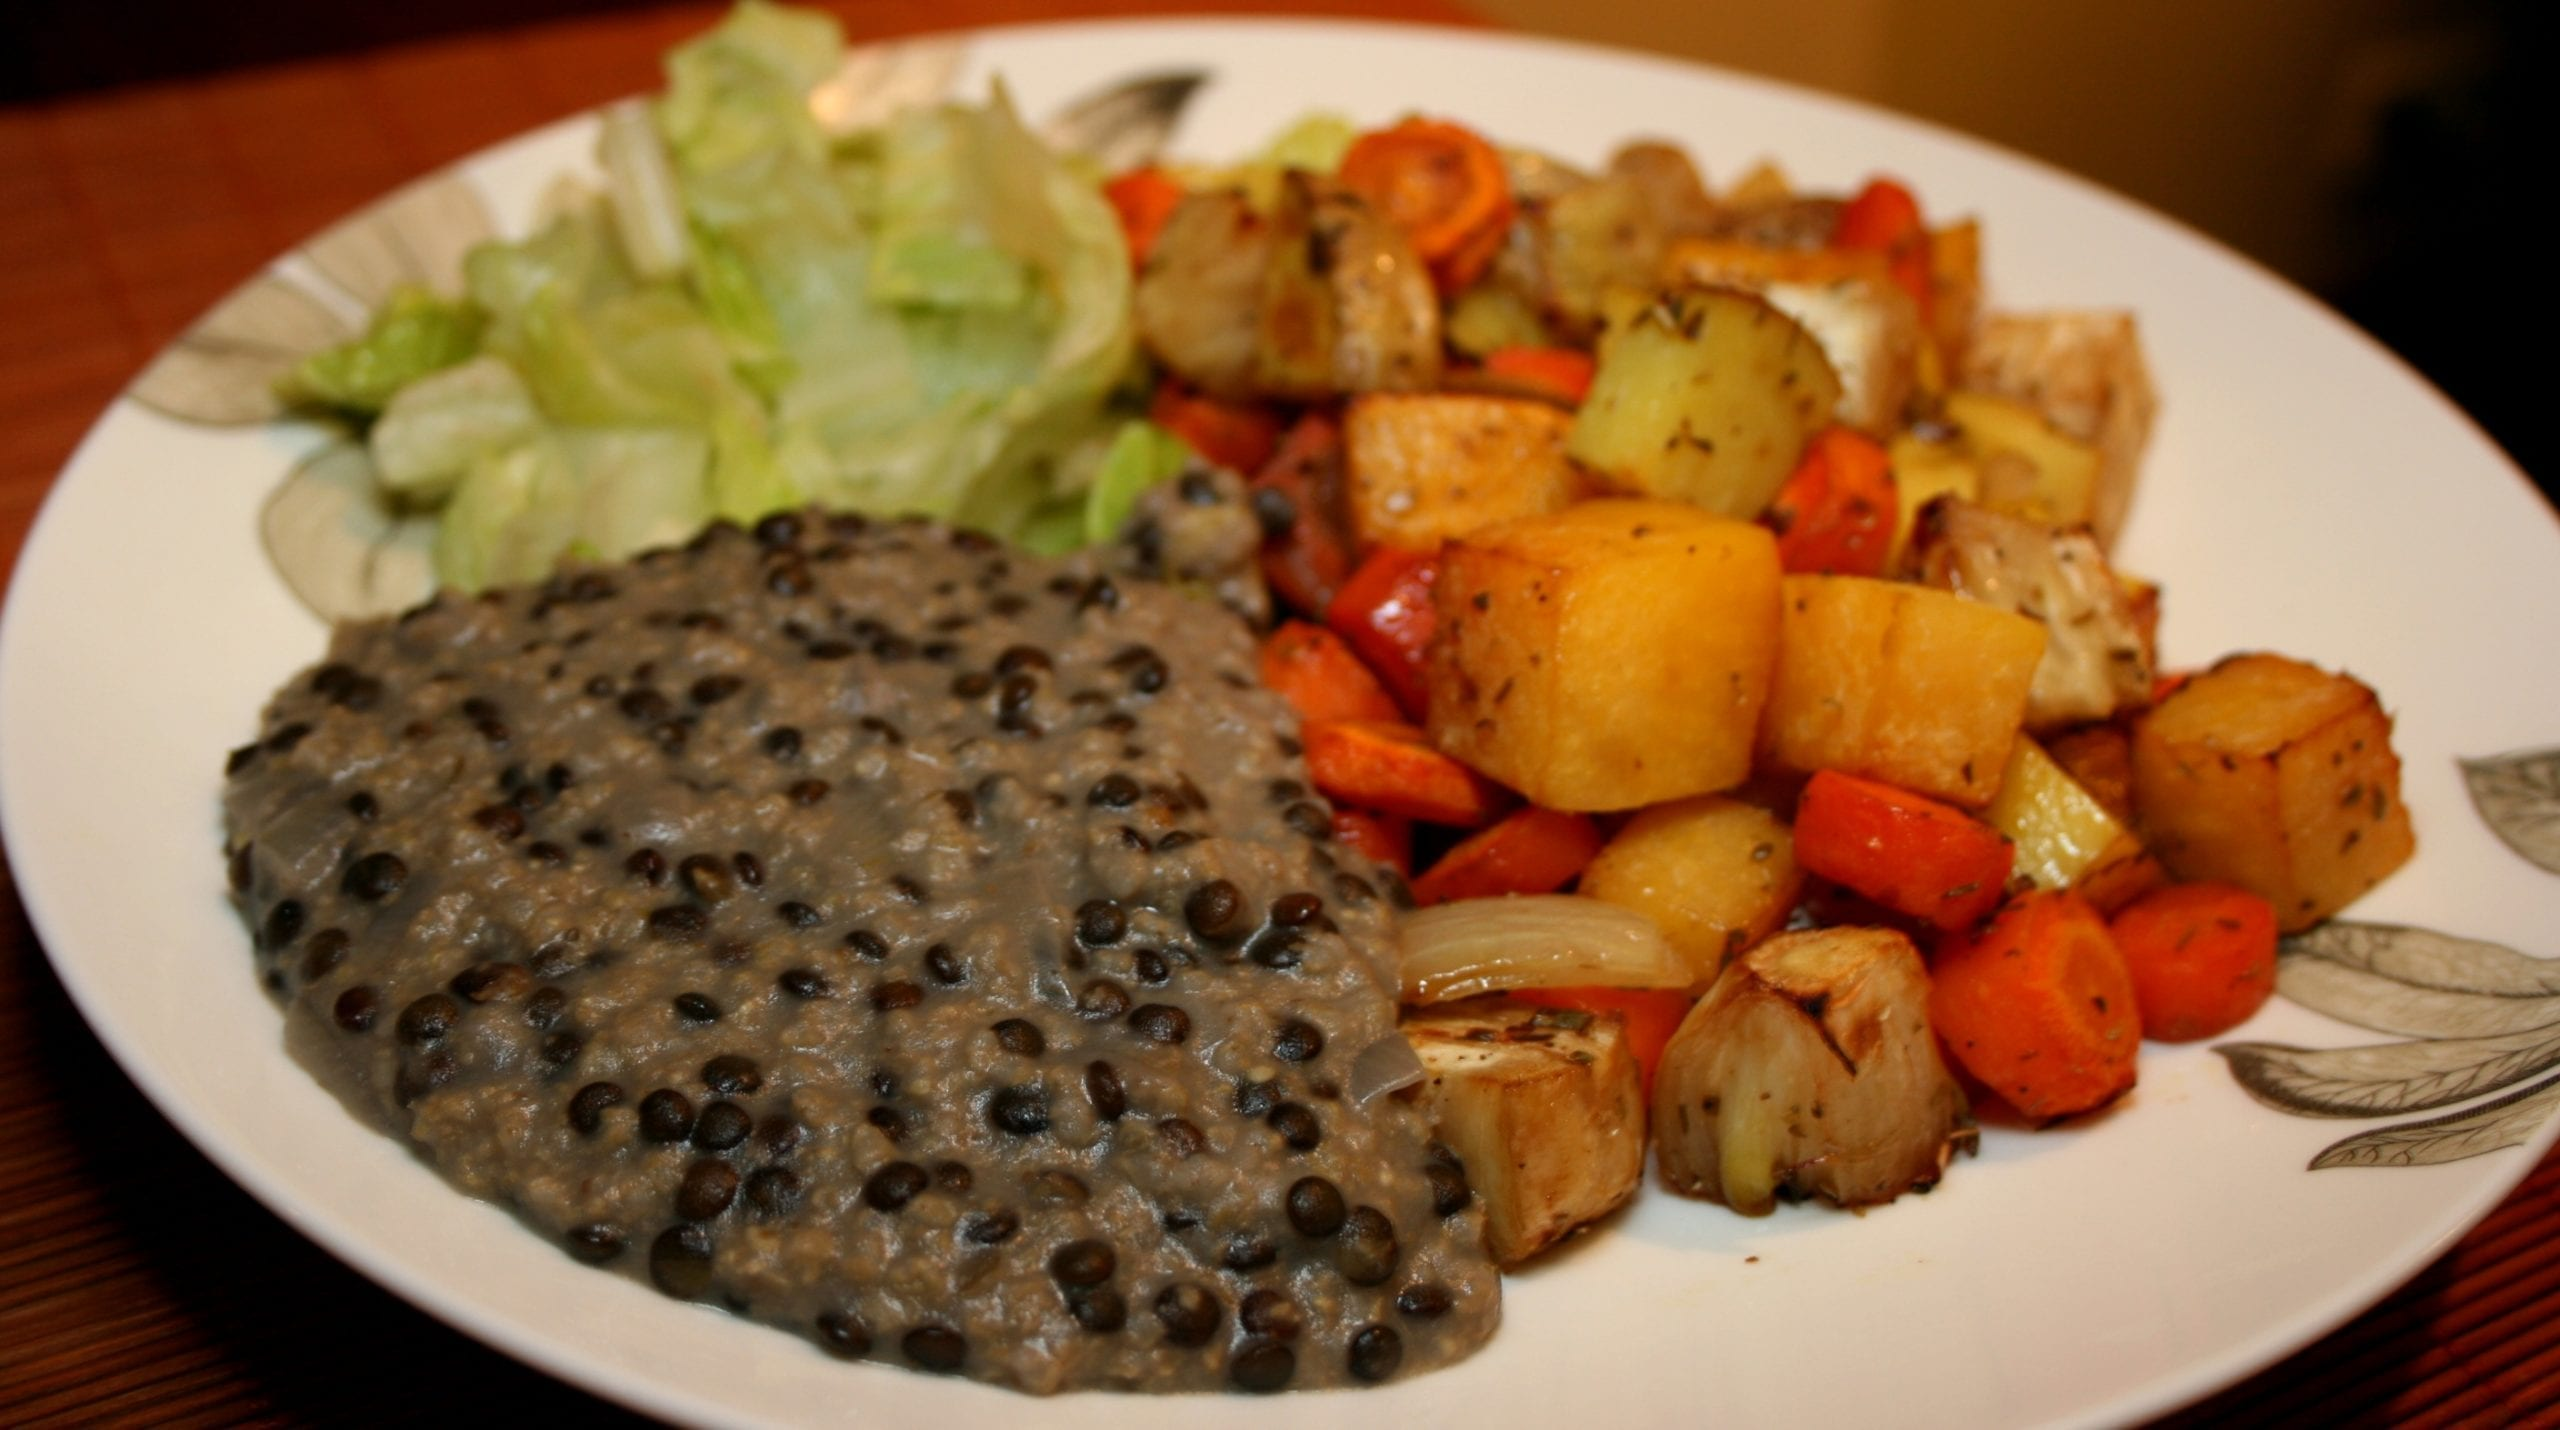 millet, beluga lentils, oven-baked vegetables, green salad